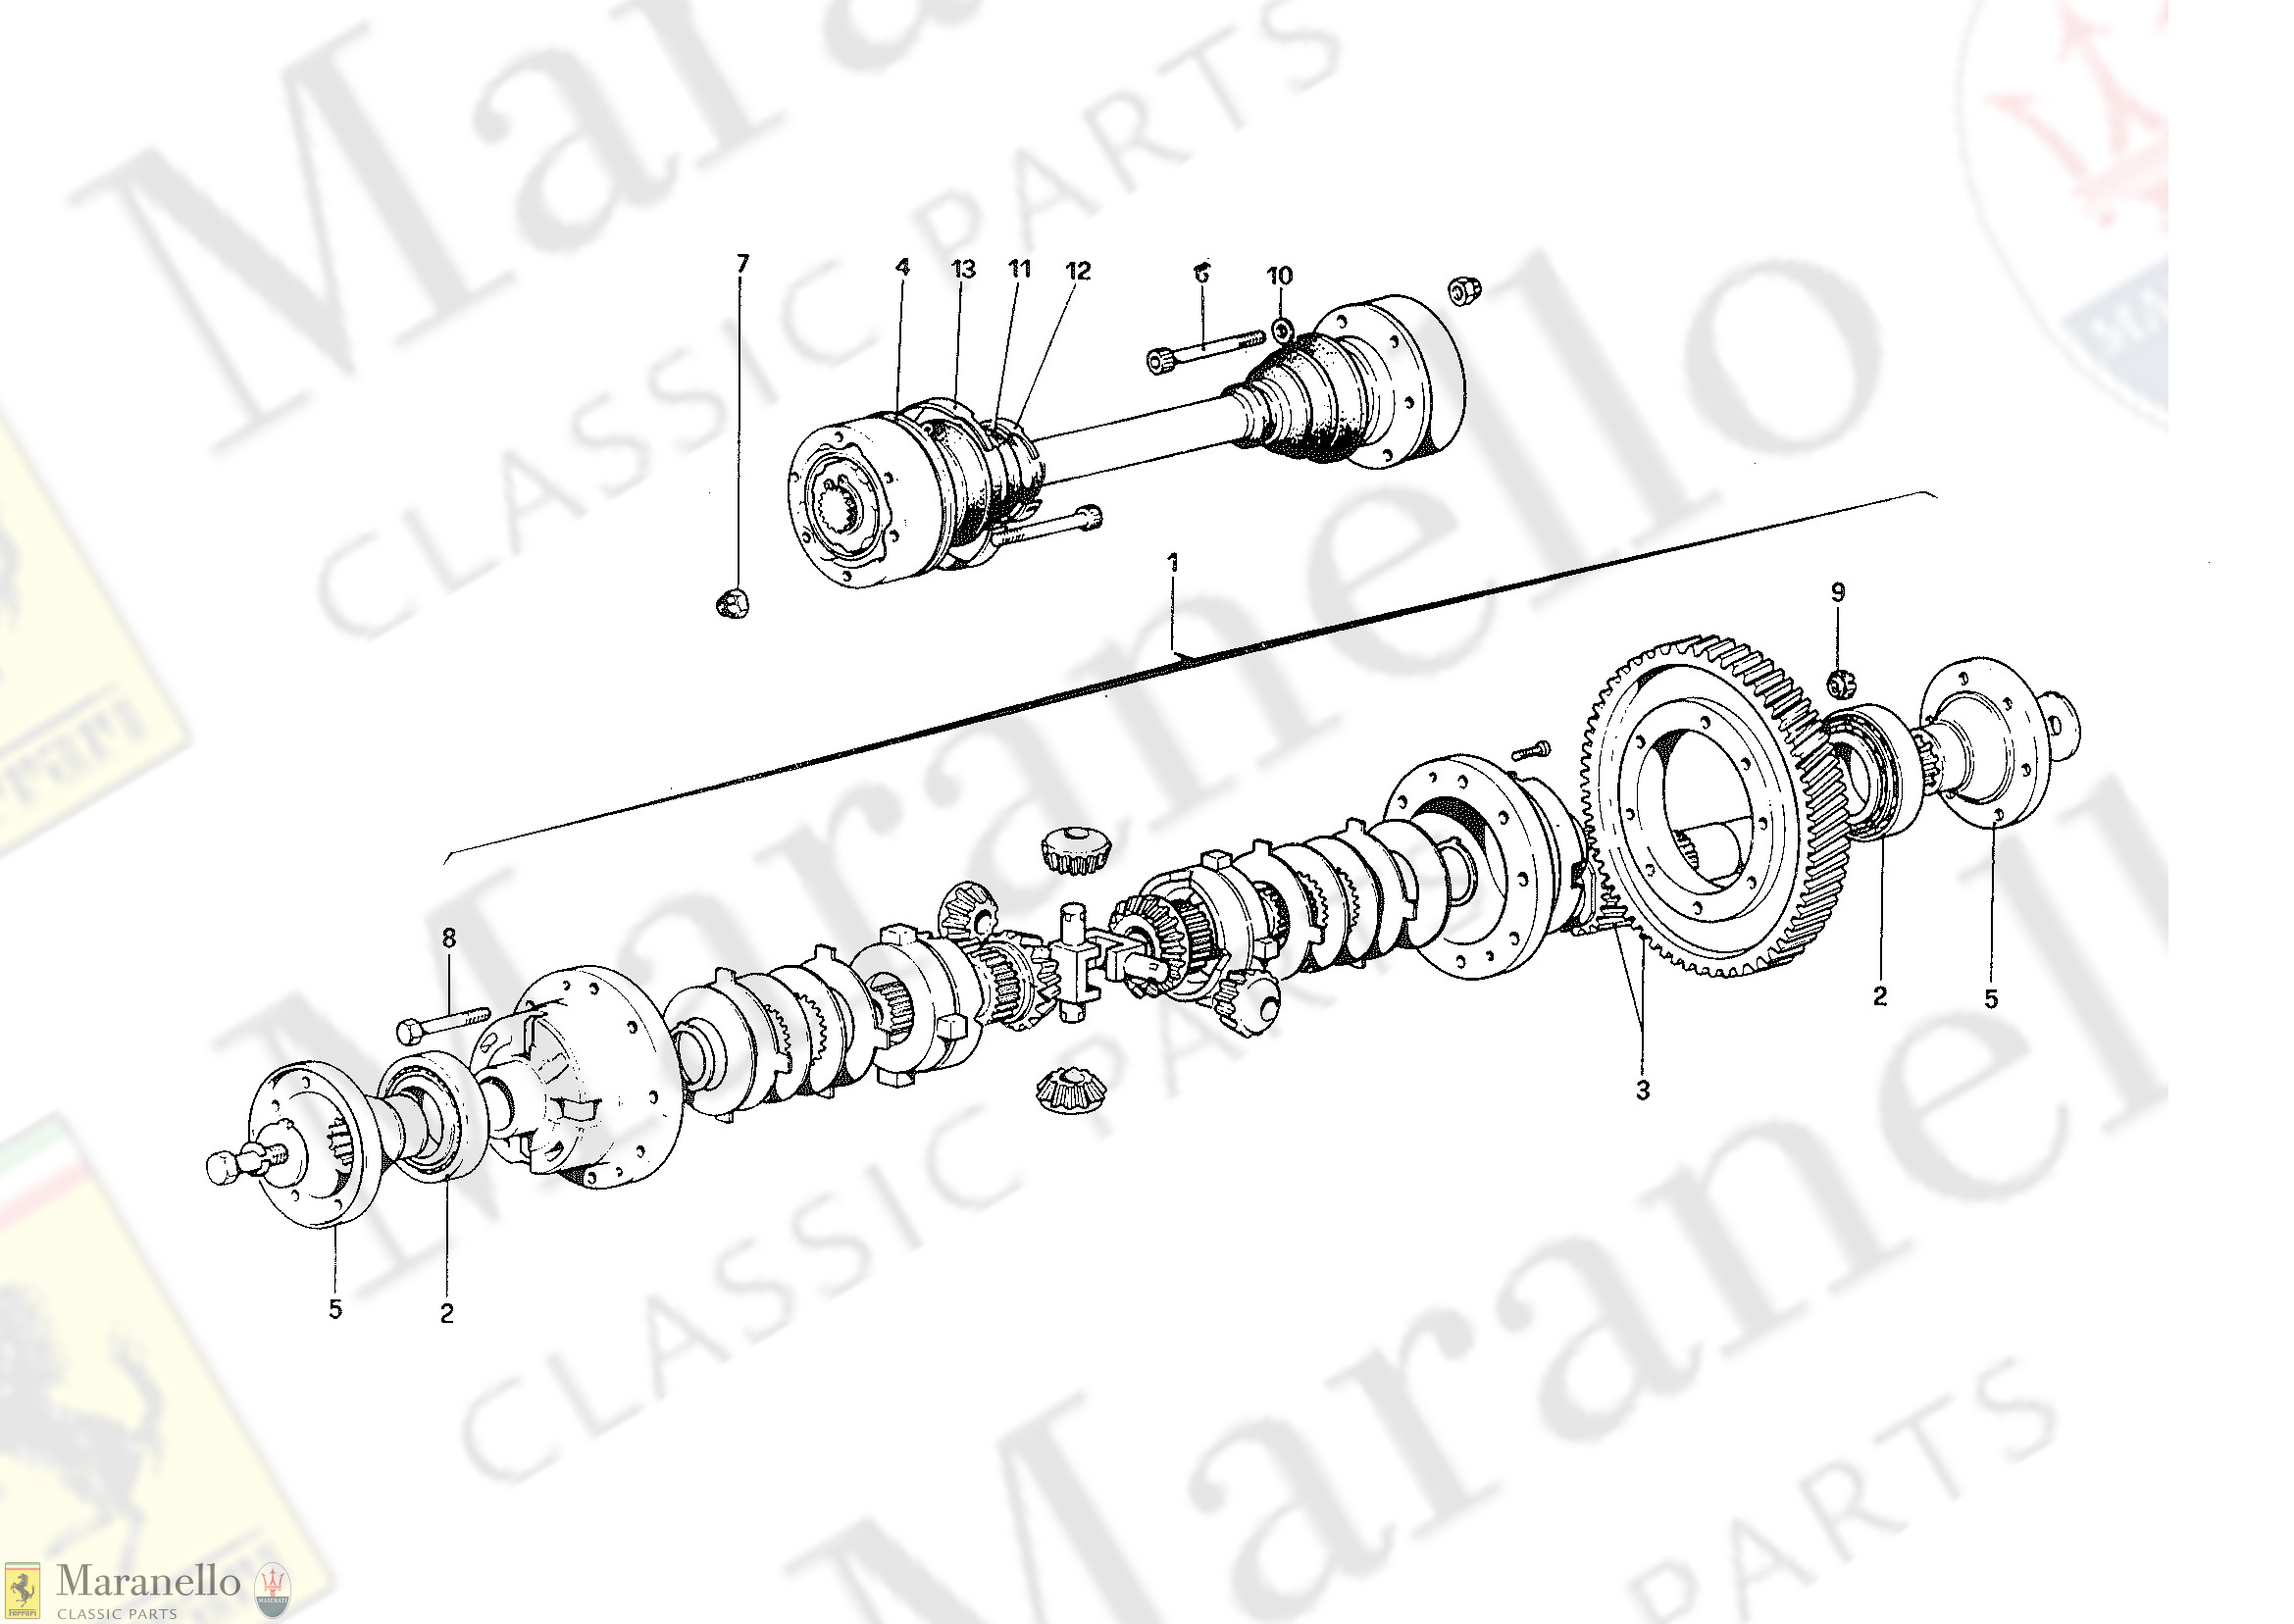 027 - Differential and Axle Shafts